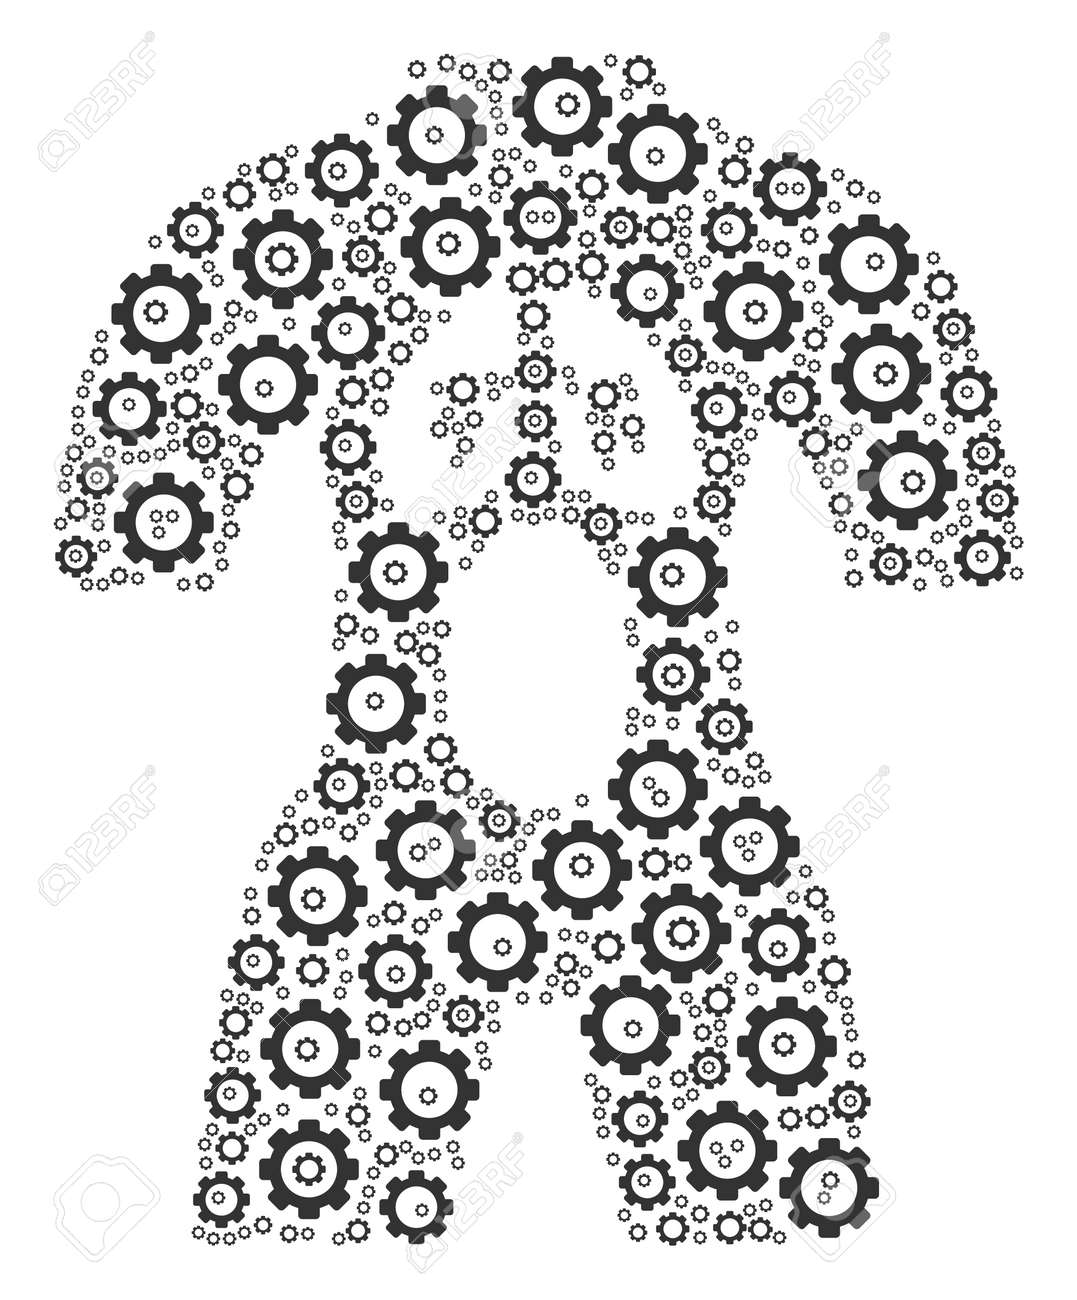 Human Anatomy Mosaic Of Cogs. Raster Cog Wheel Icons Are Combined ...